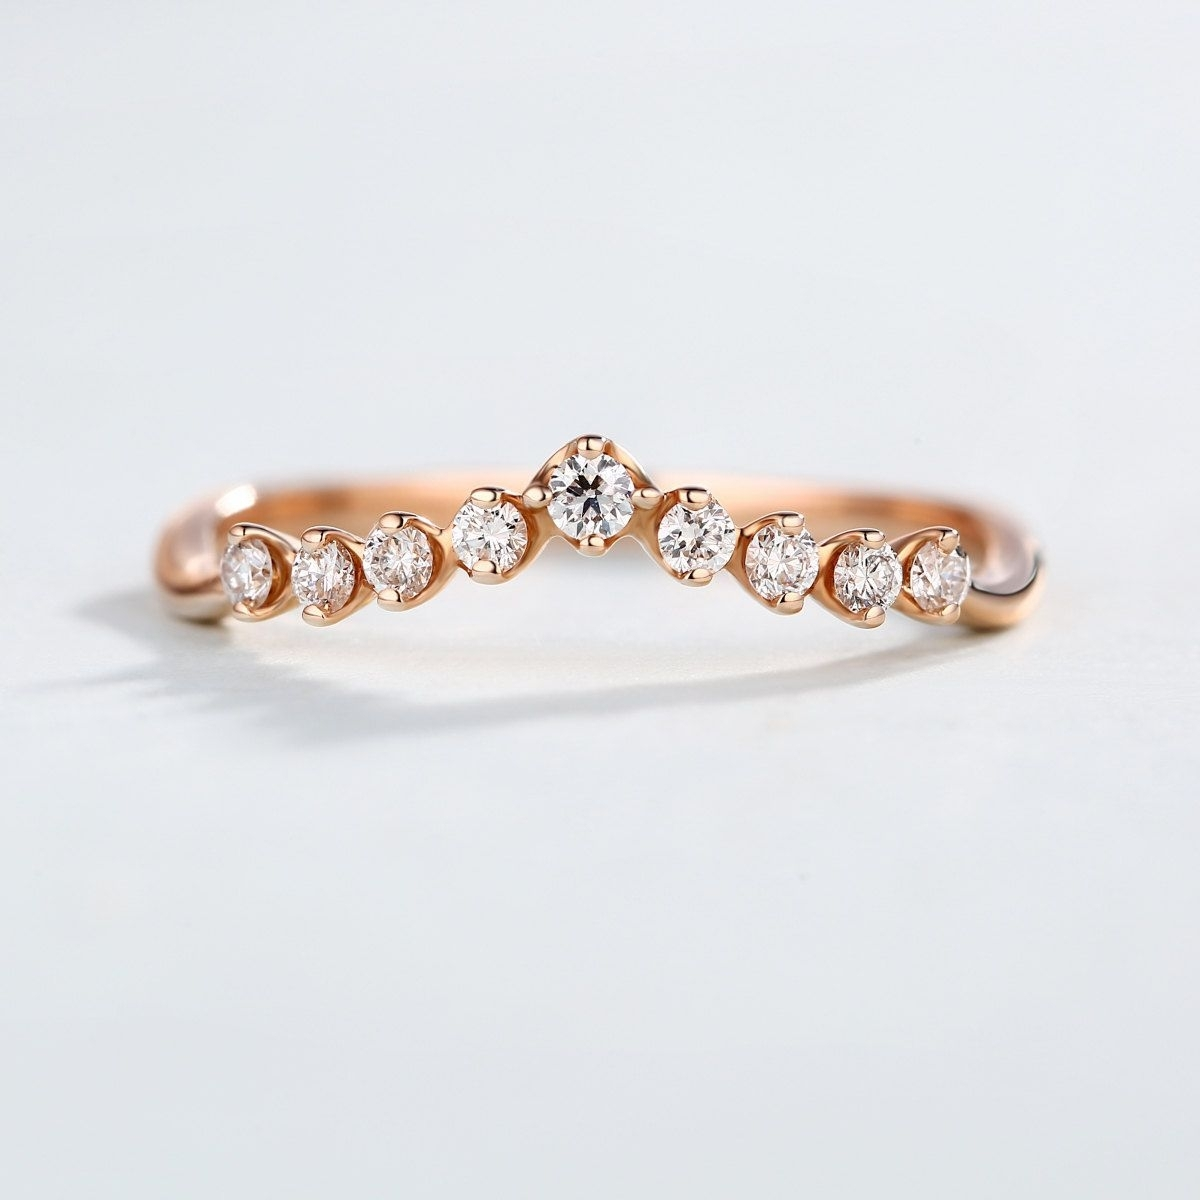 Curved Diamond Ring, Wedding Band 14k Rose Gold Ring Chevron Ring Intended For 2018 Chevron Band Rings (Gallery 7 of 15)